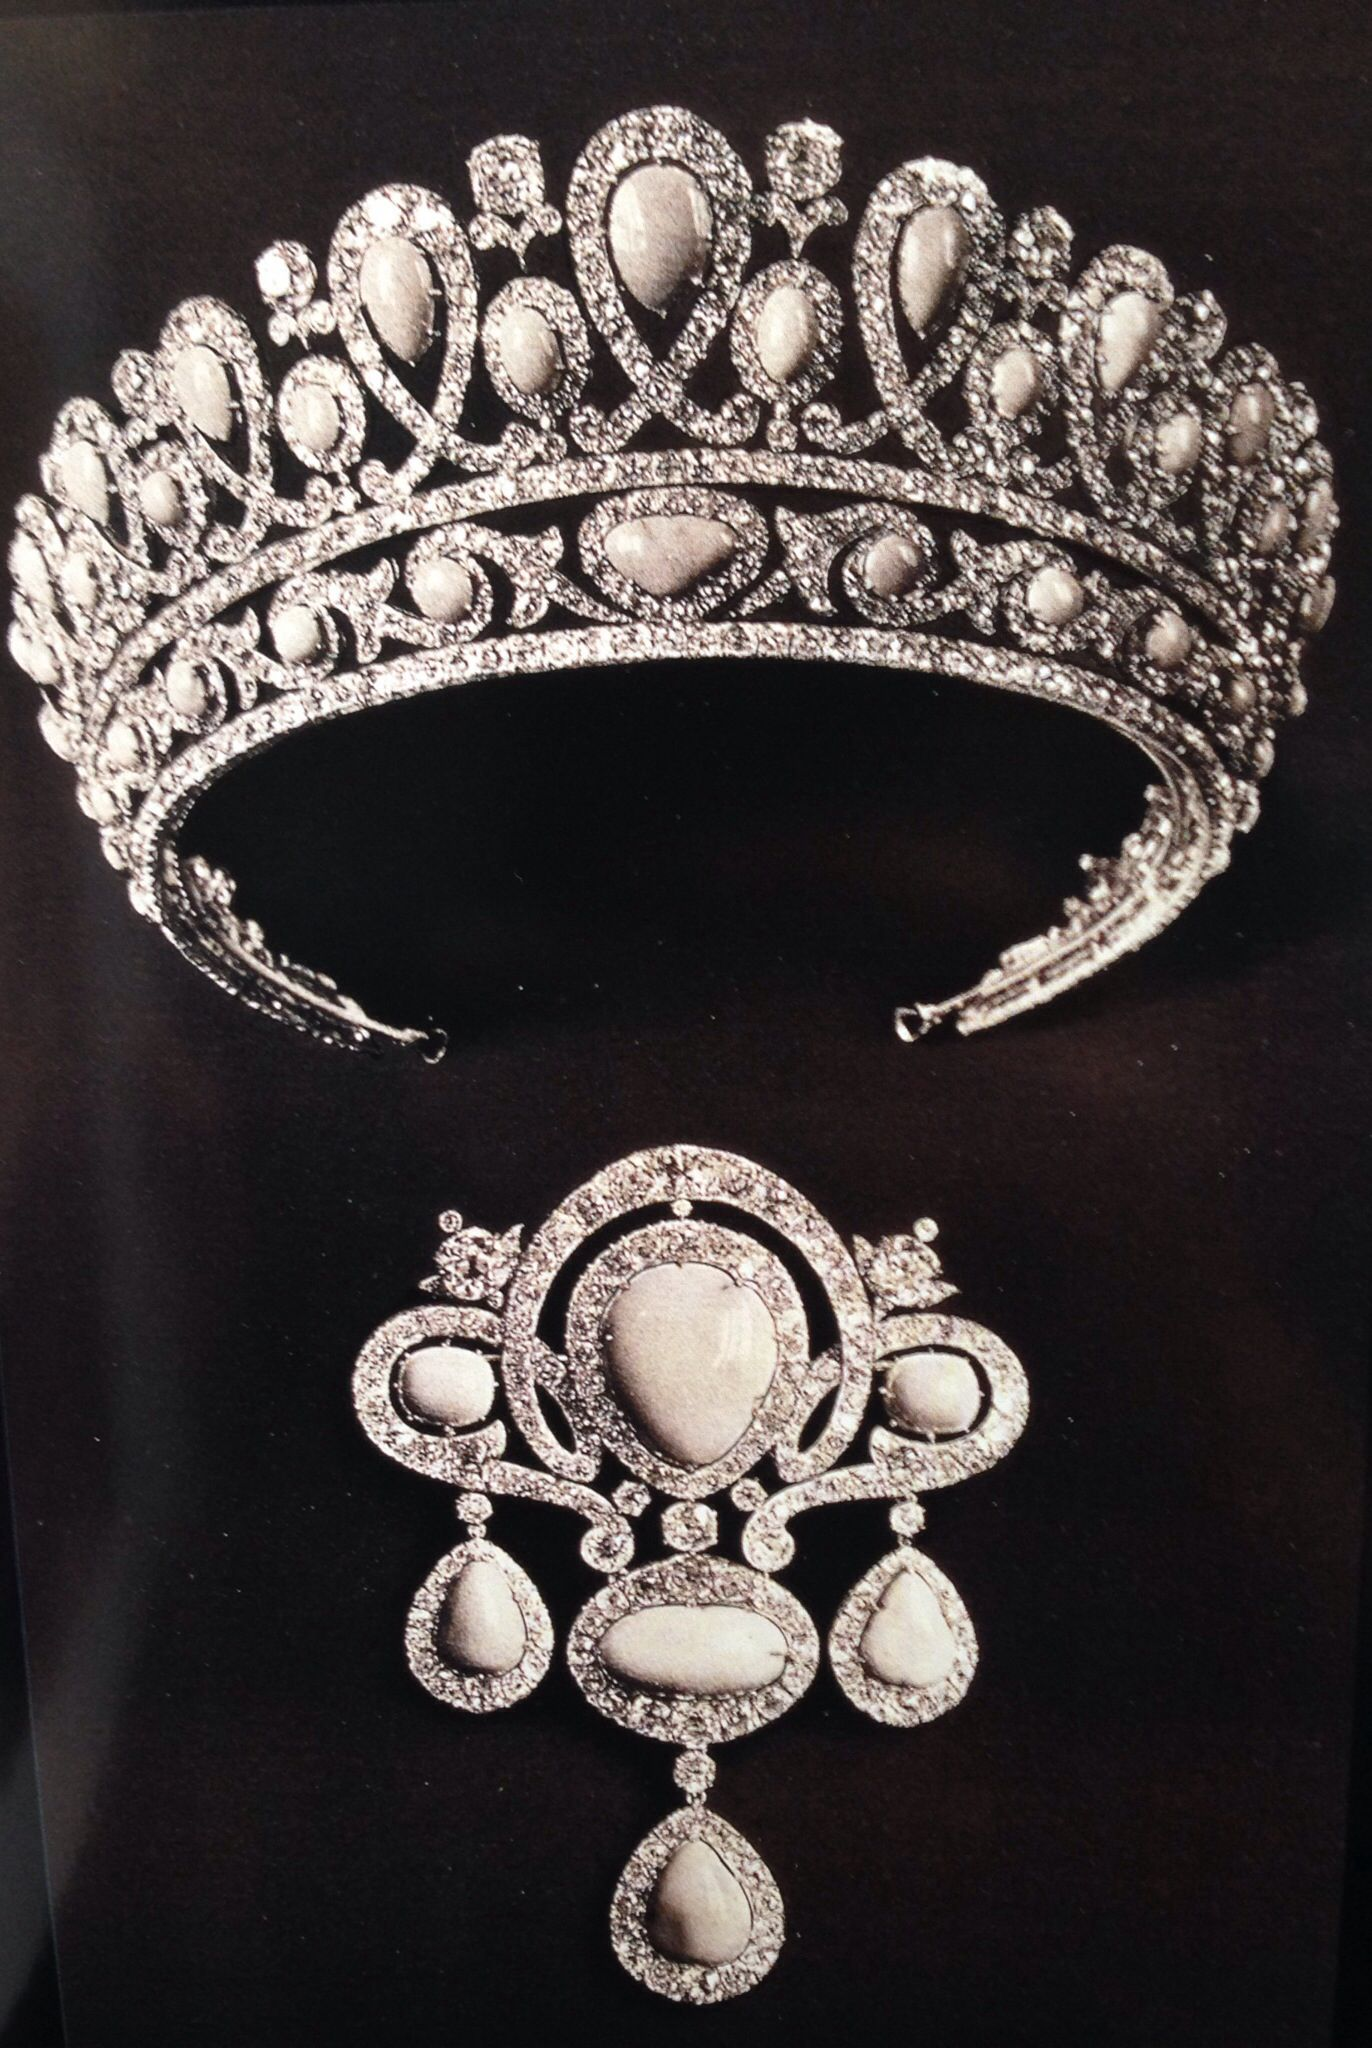 Turquoise And Diamond Tiara And Brooch From The Russian Imperial